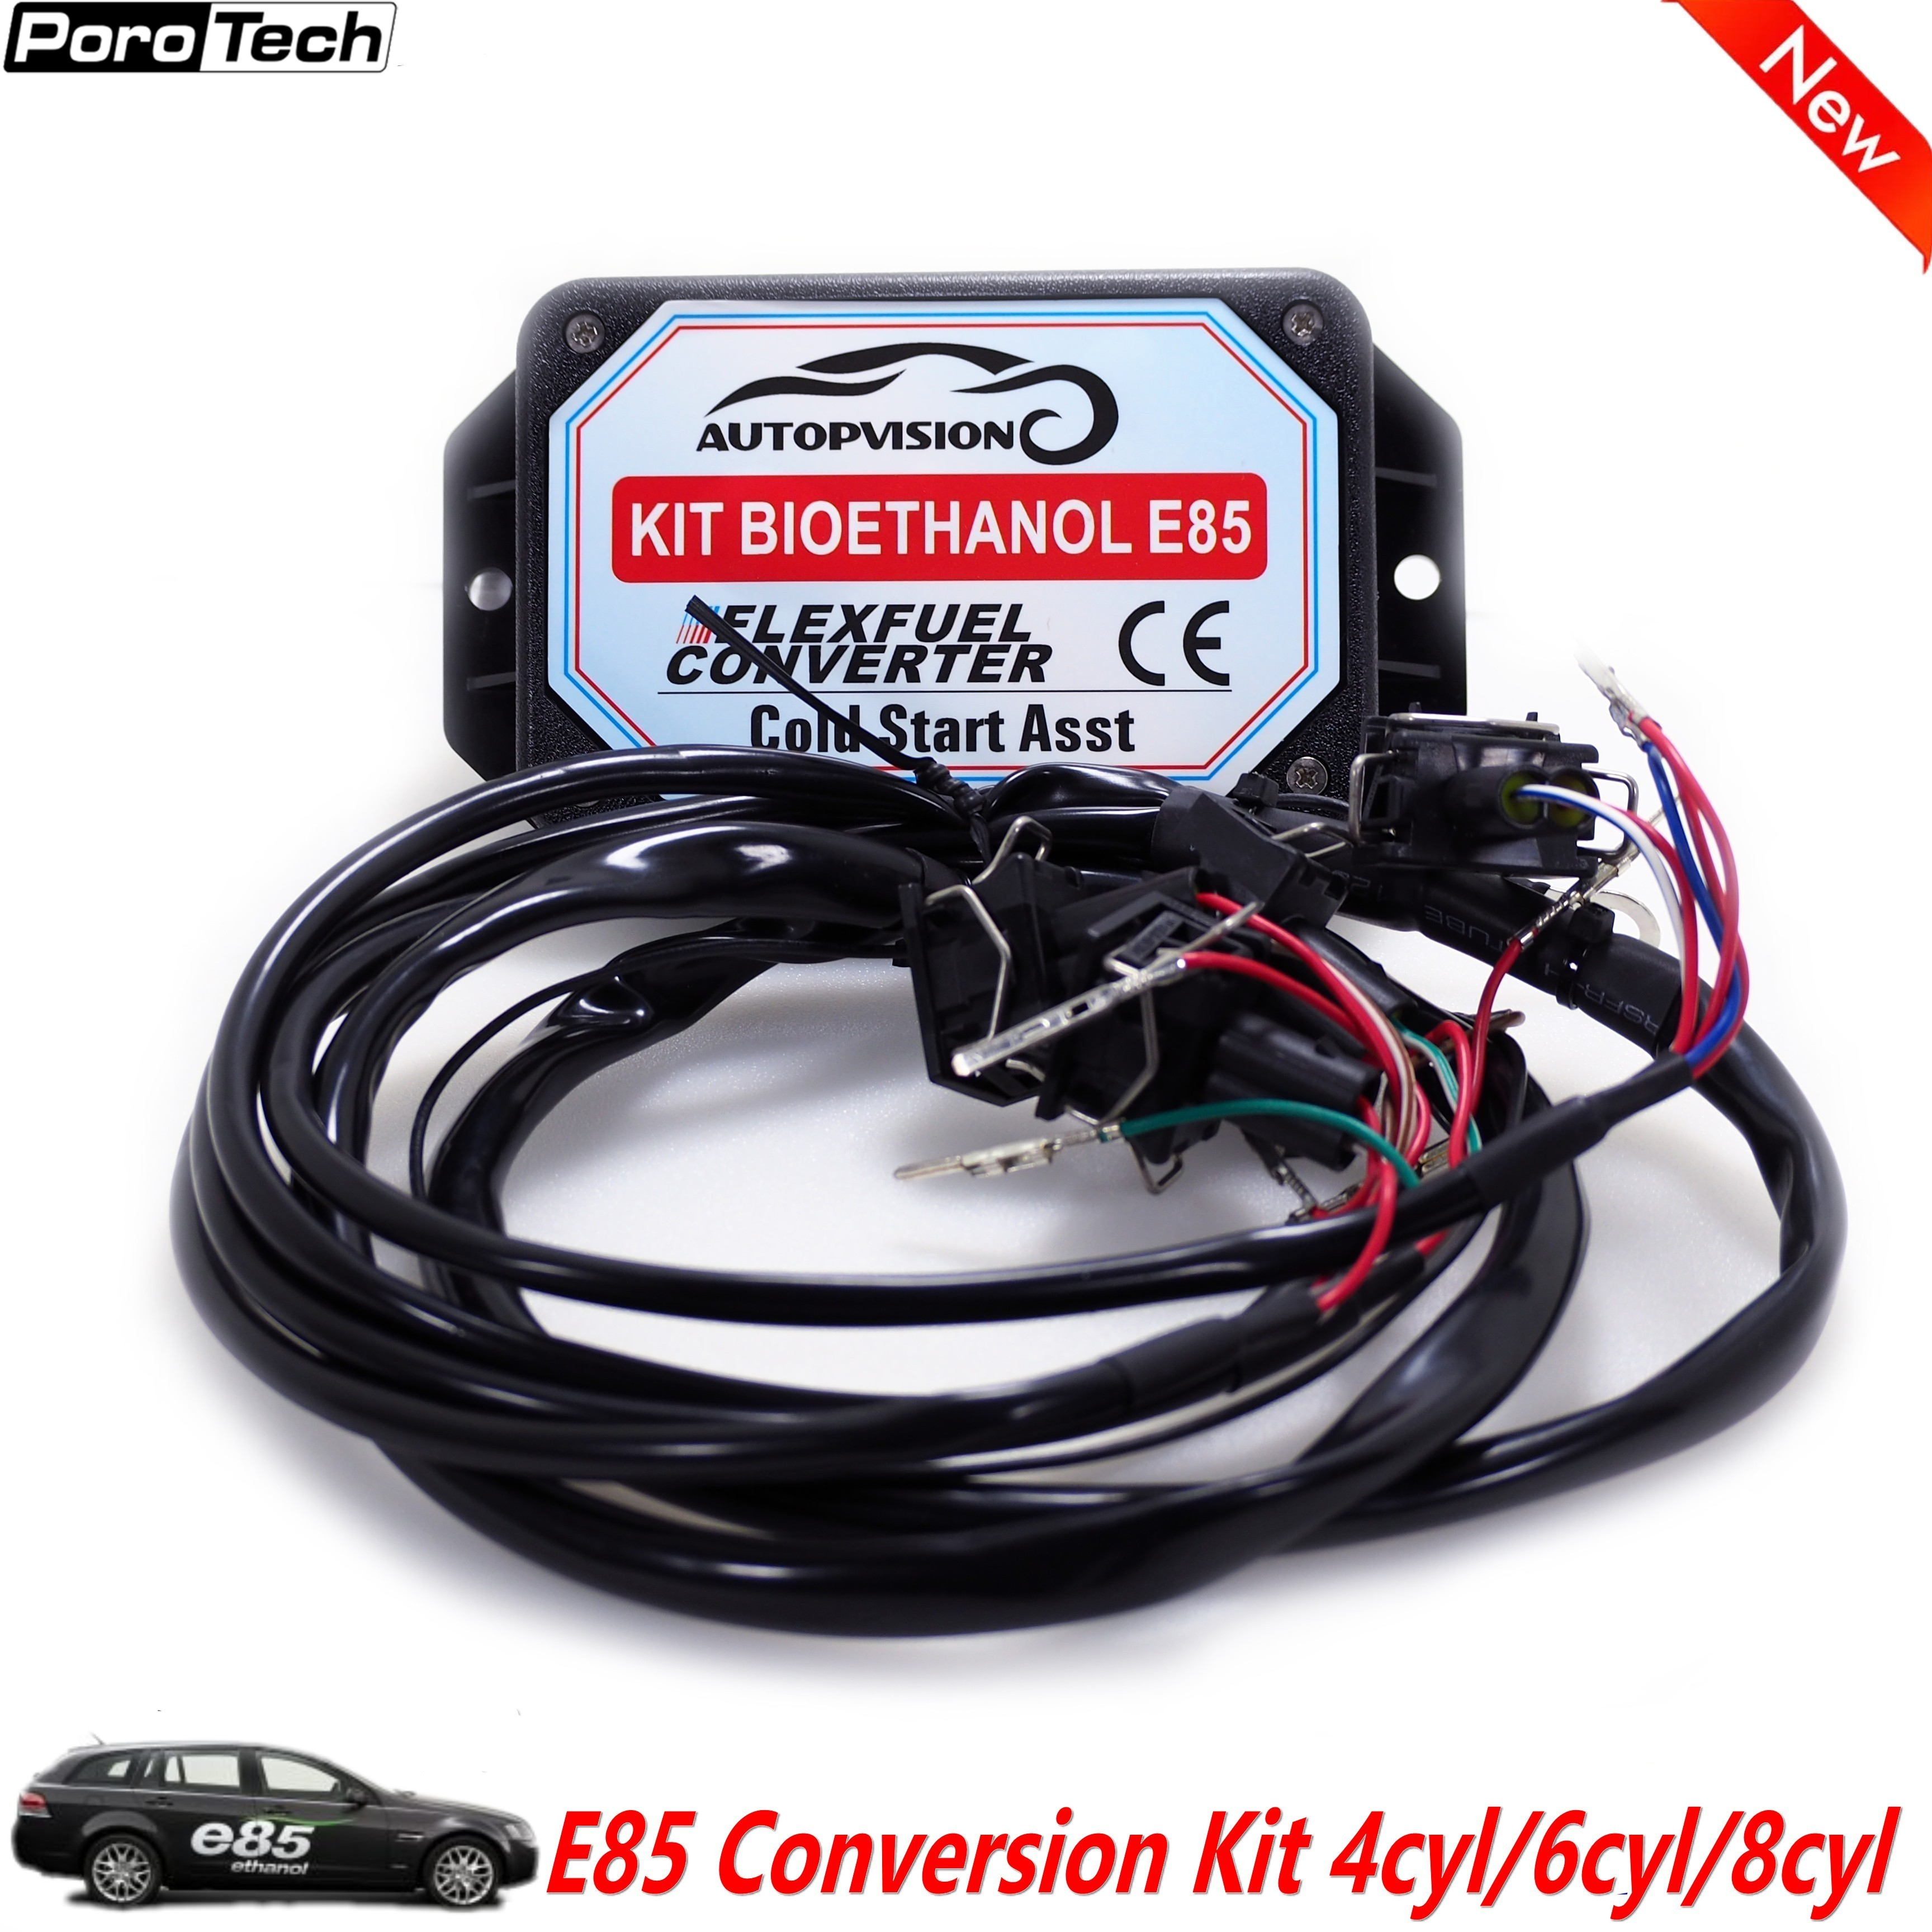 NEW Cool Start E85 4/6/8CYL Conversion Kit Flex Fuel Ethanol Car, Work With Car Original Fuel Injection System Adjust Air/fuel